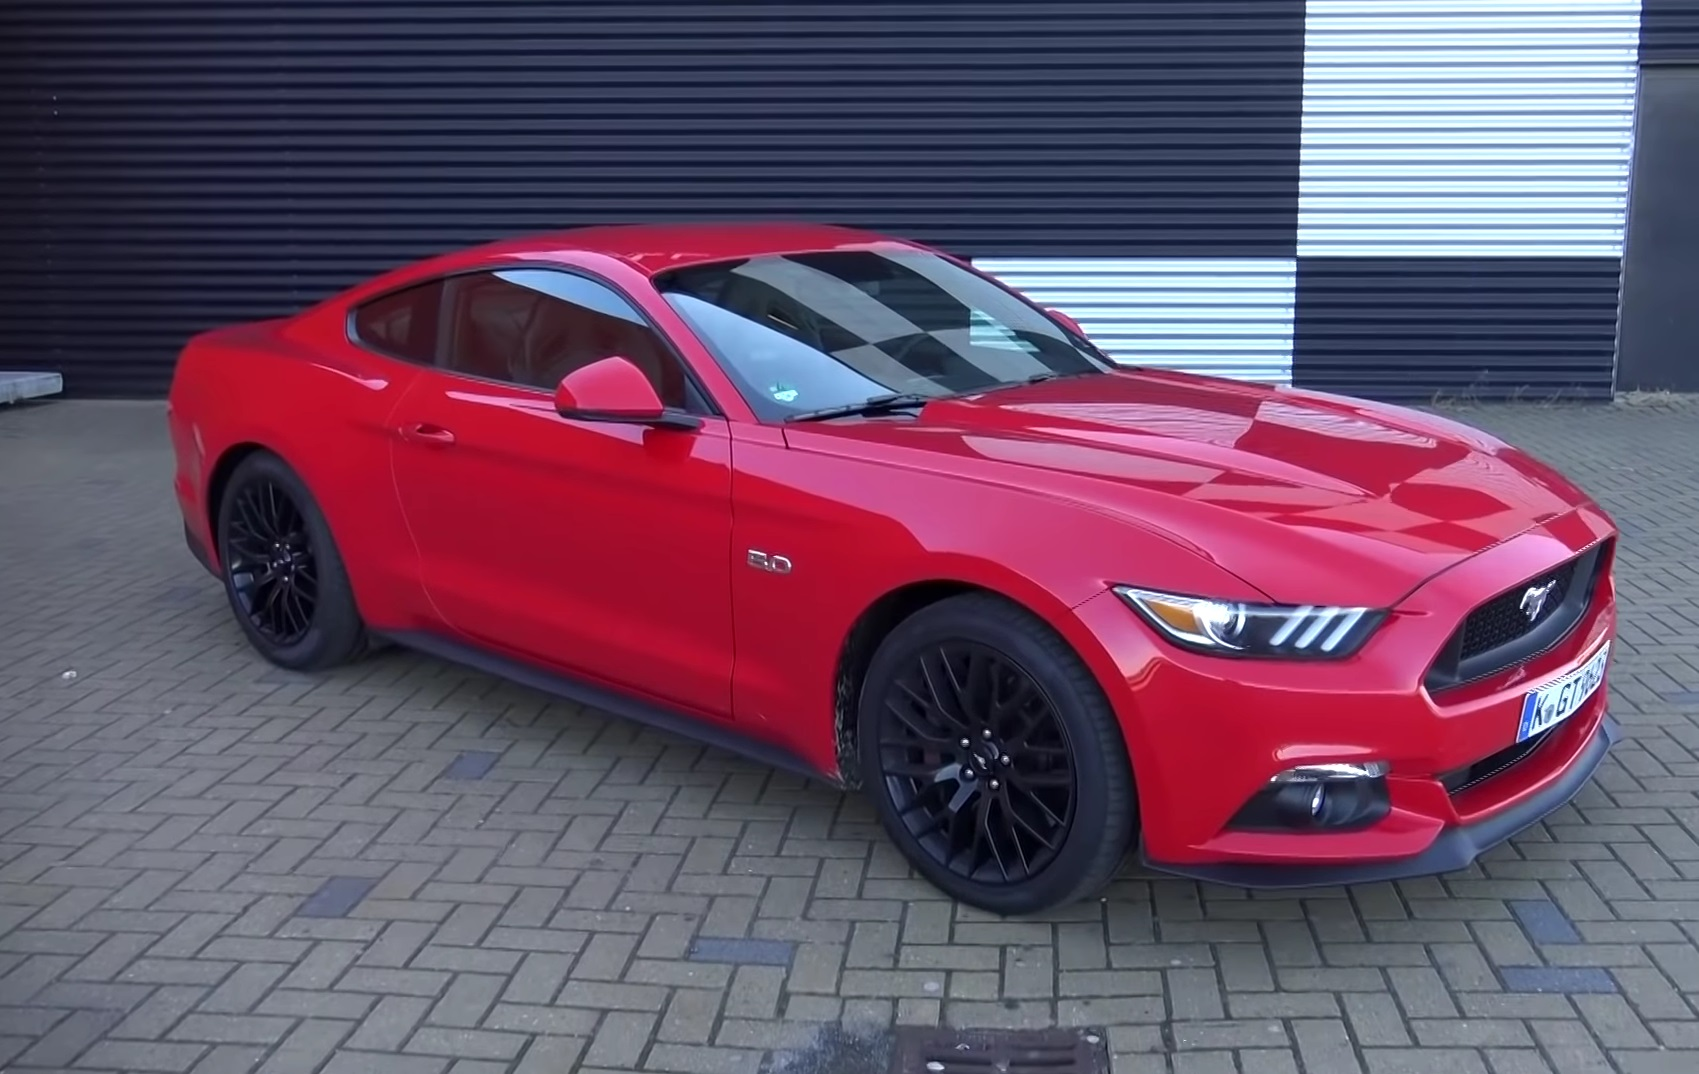 Video: 2015 Ford Mustang V8 - Tour, Test Drive and Thoughts